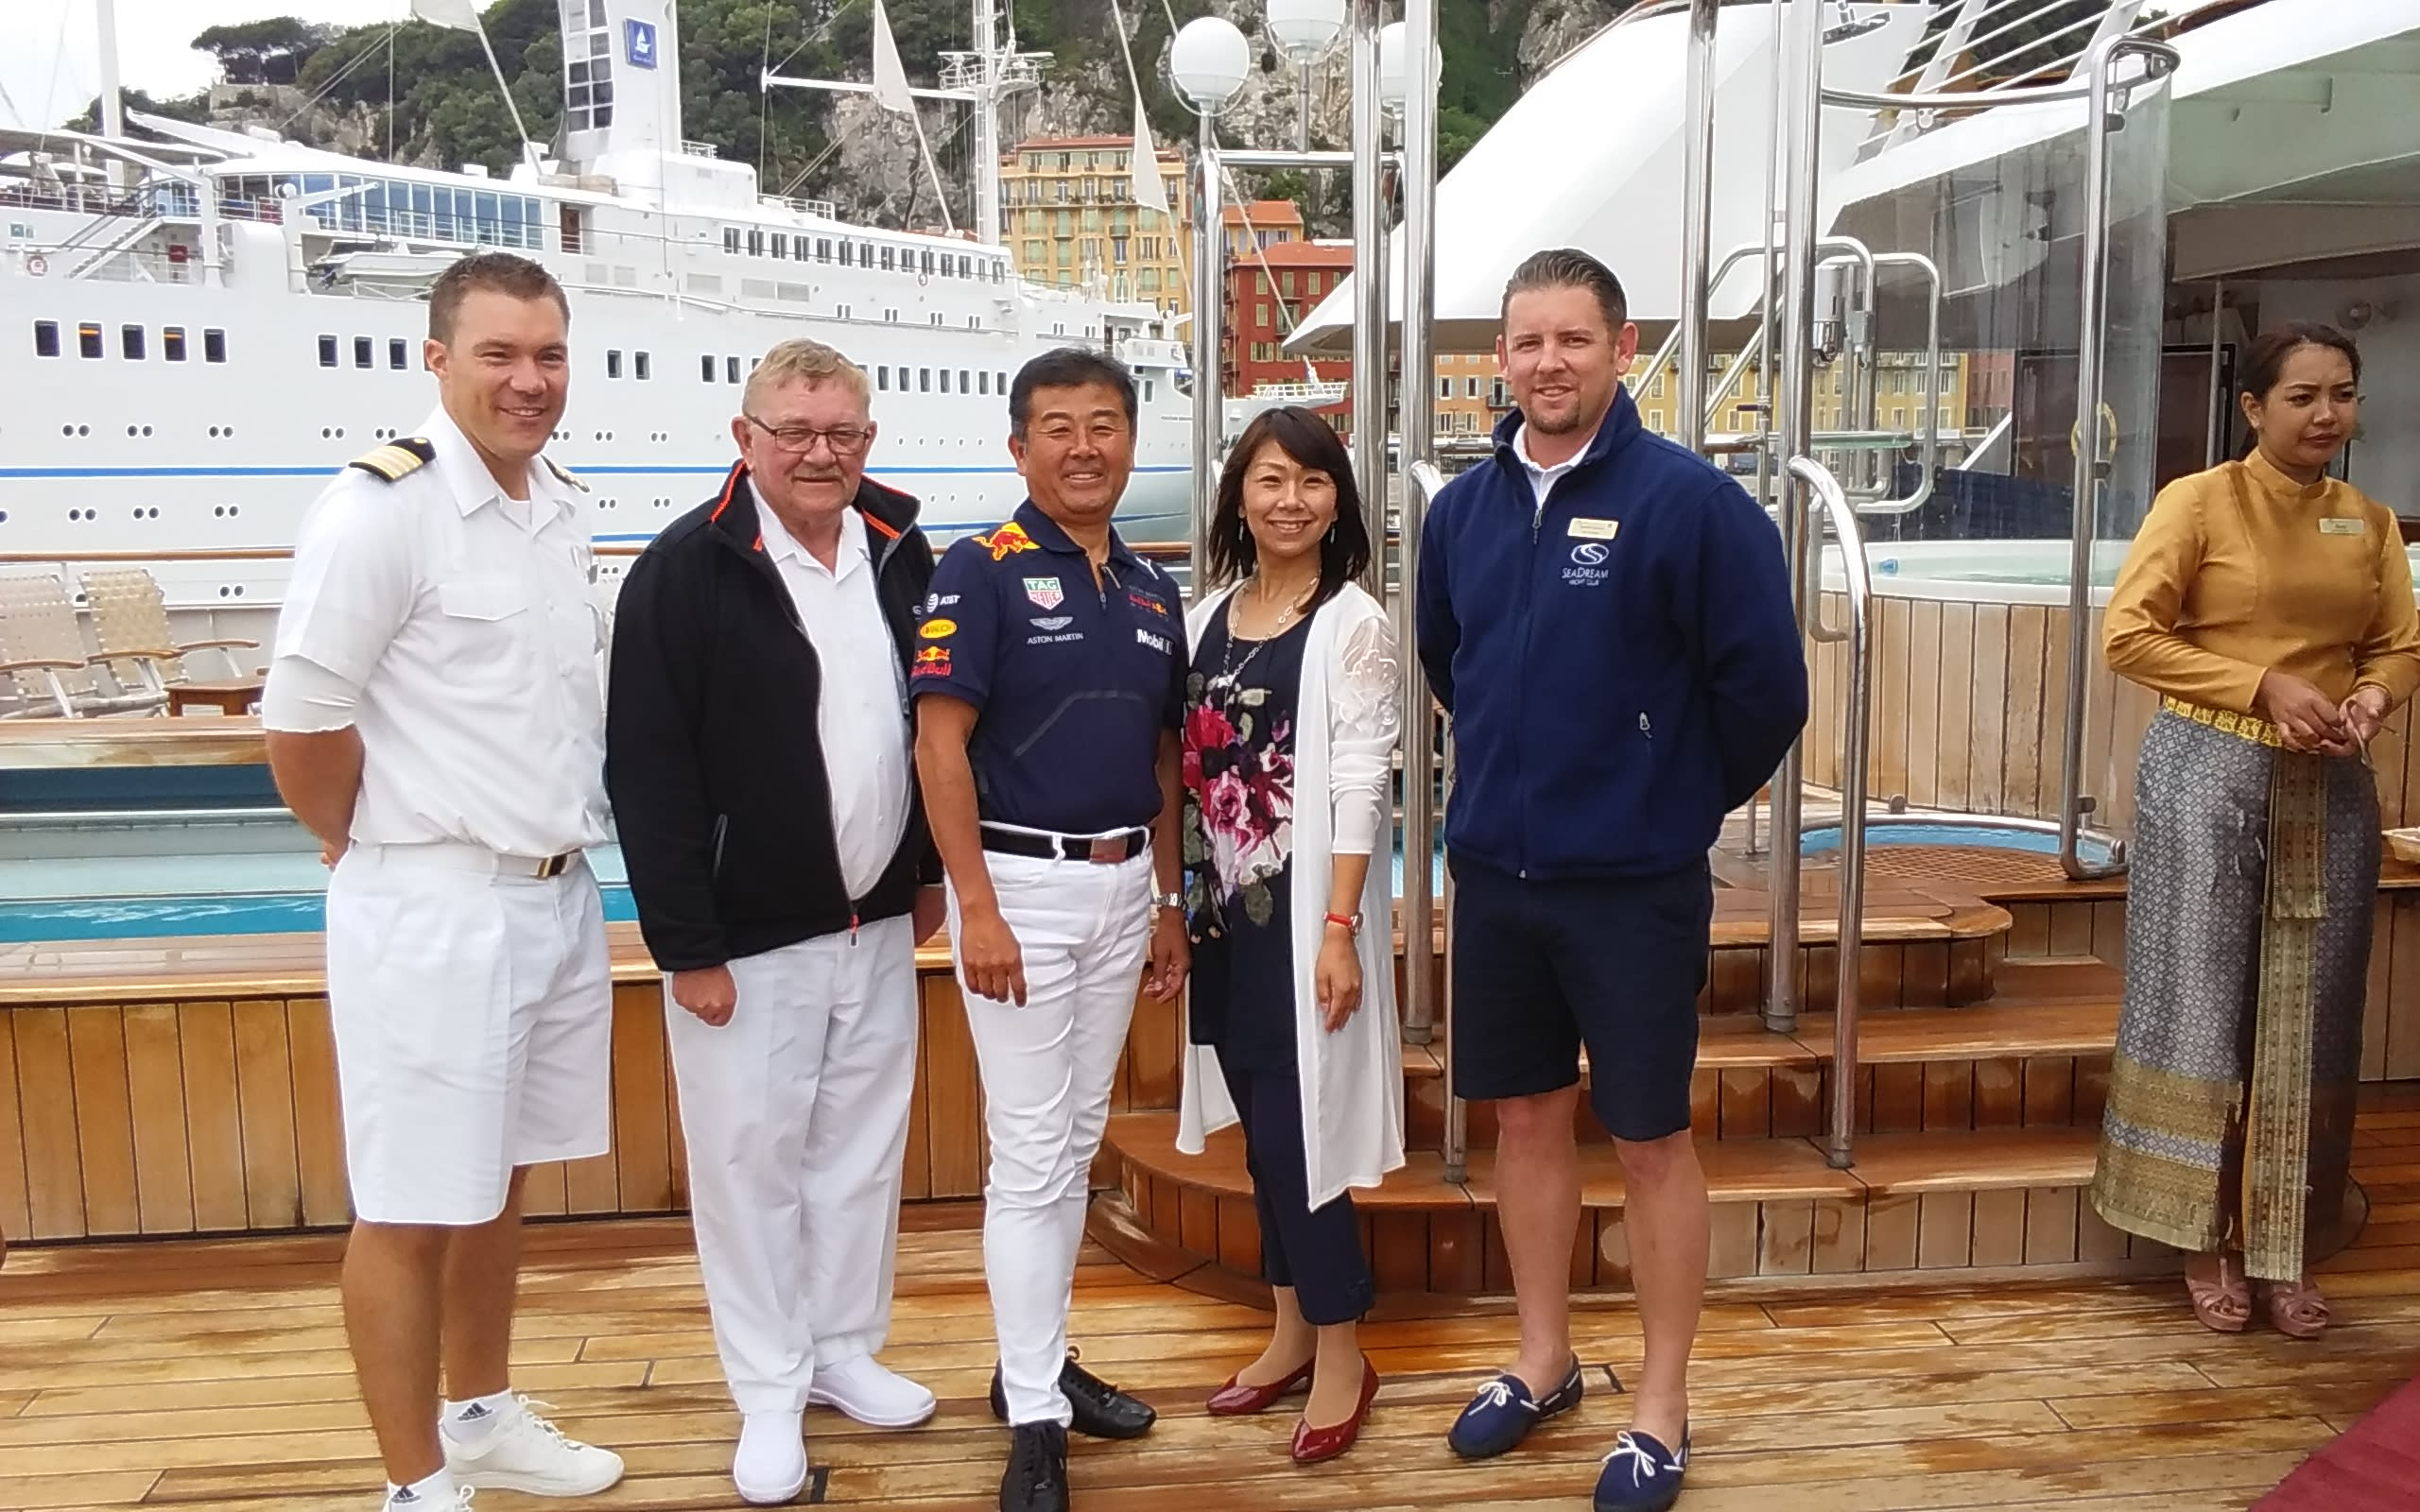 SeaDream1 Monaco Grand Prix 26(Sun) May 2019